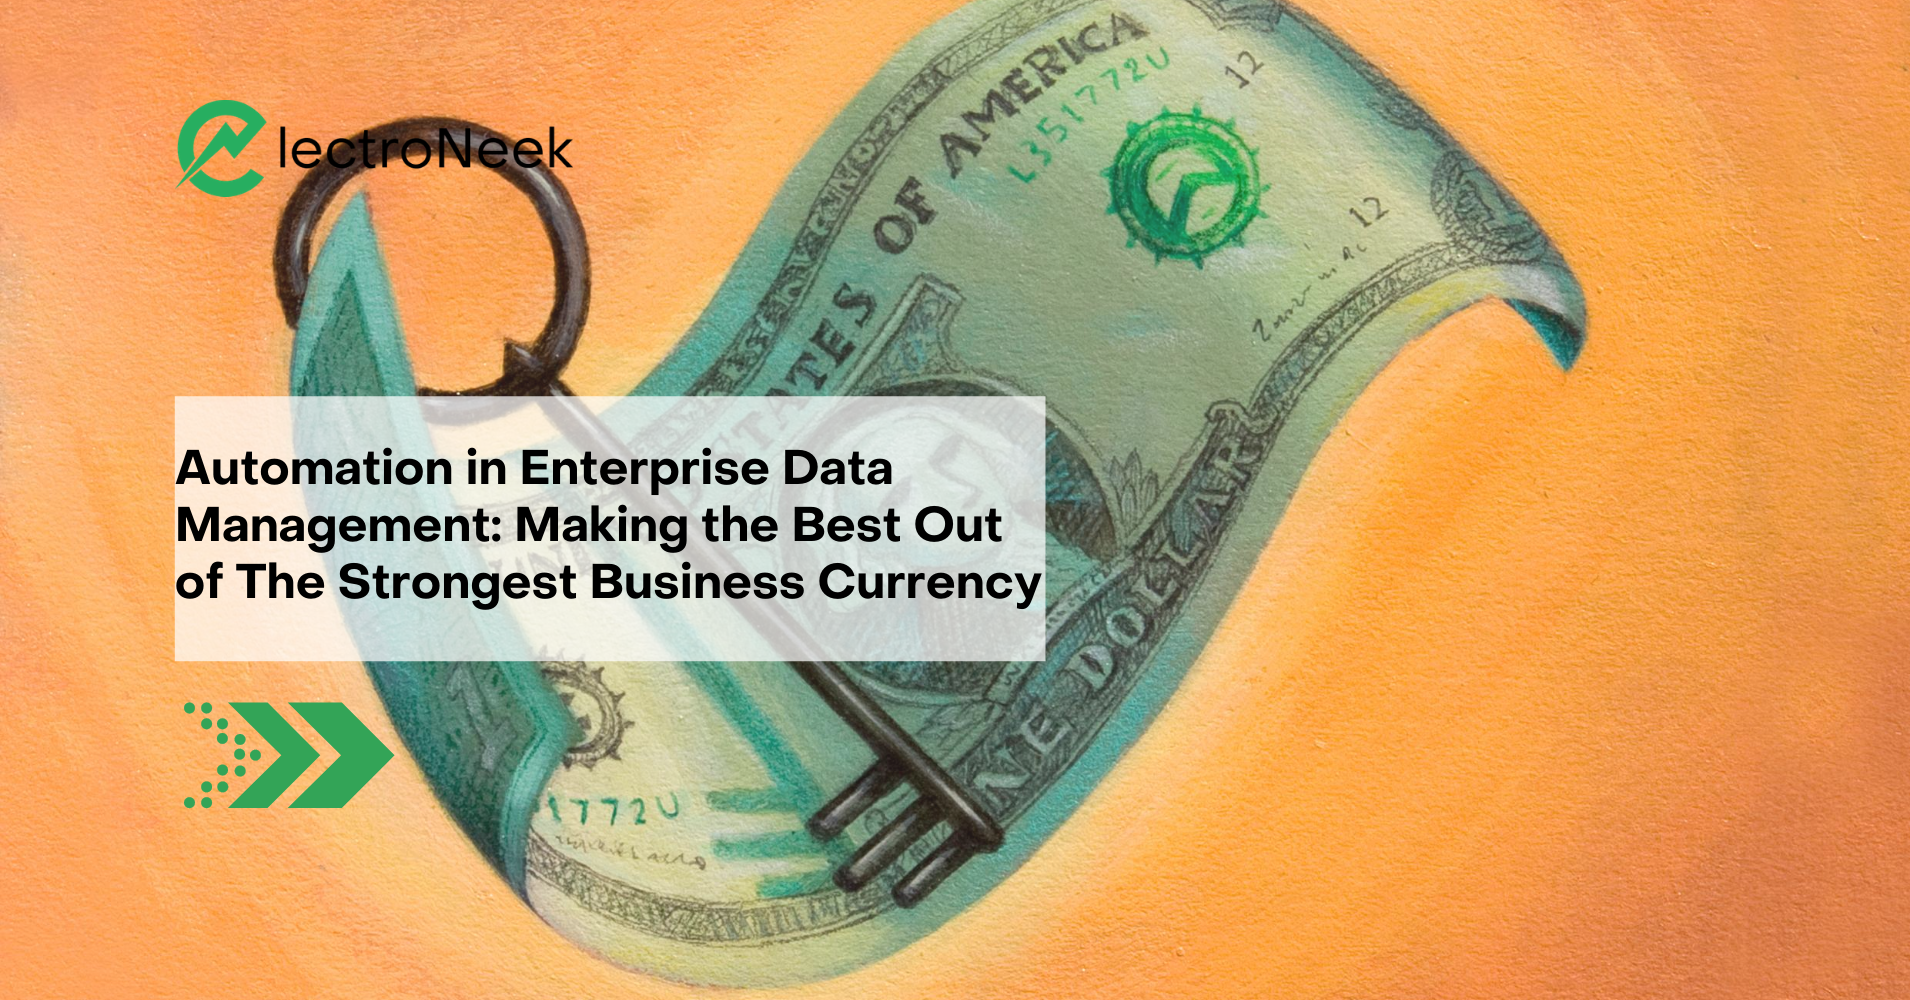 Automation in Enterprise Data Management: Making the Best Out of The Strongest Business Currency